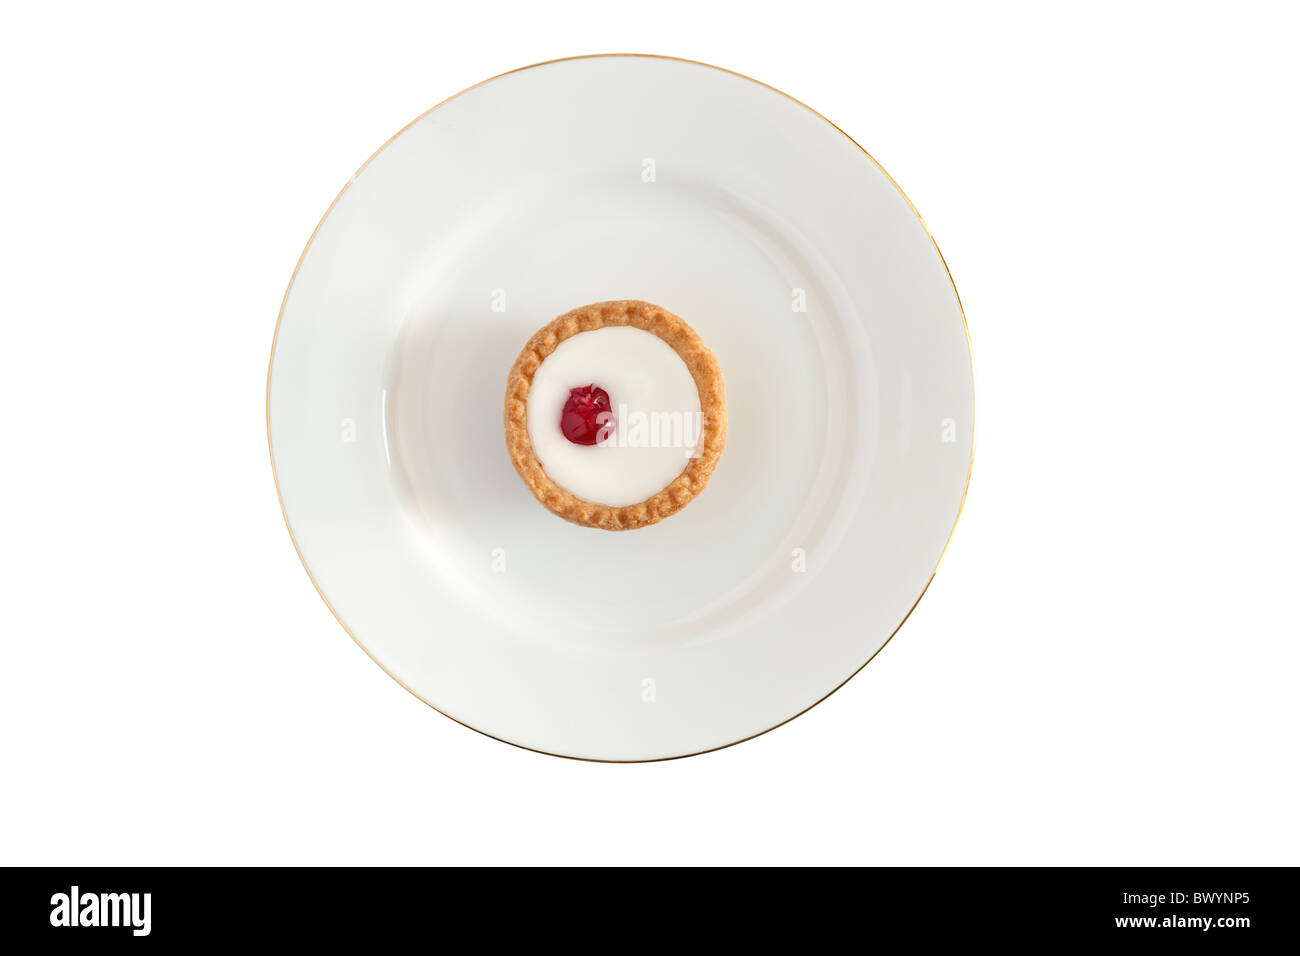 Solitary bakewell bun on a white plate plus clipping path - Stock Image